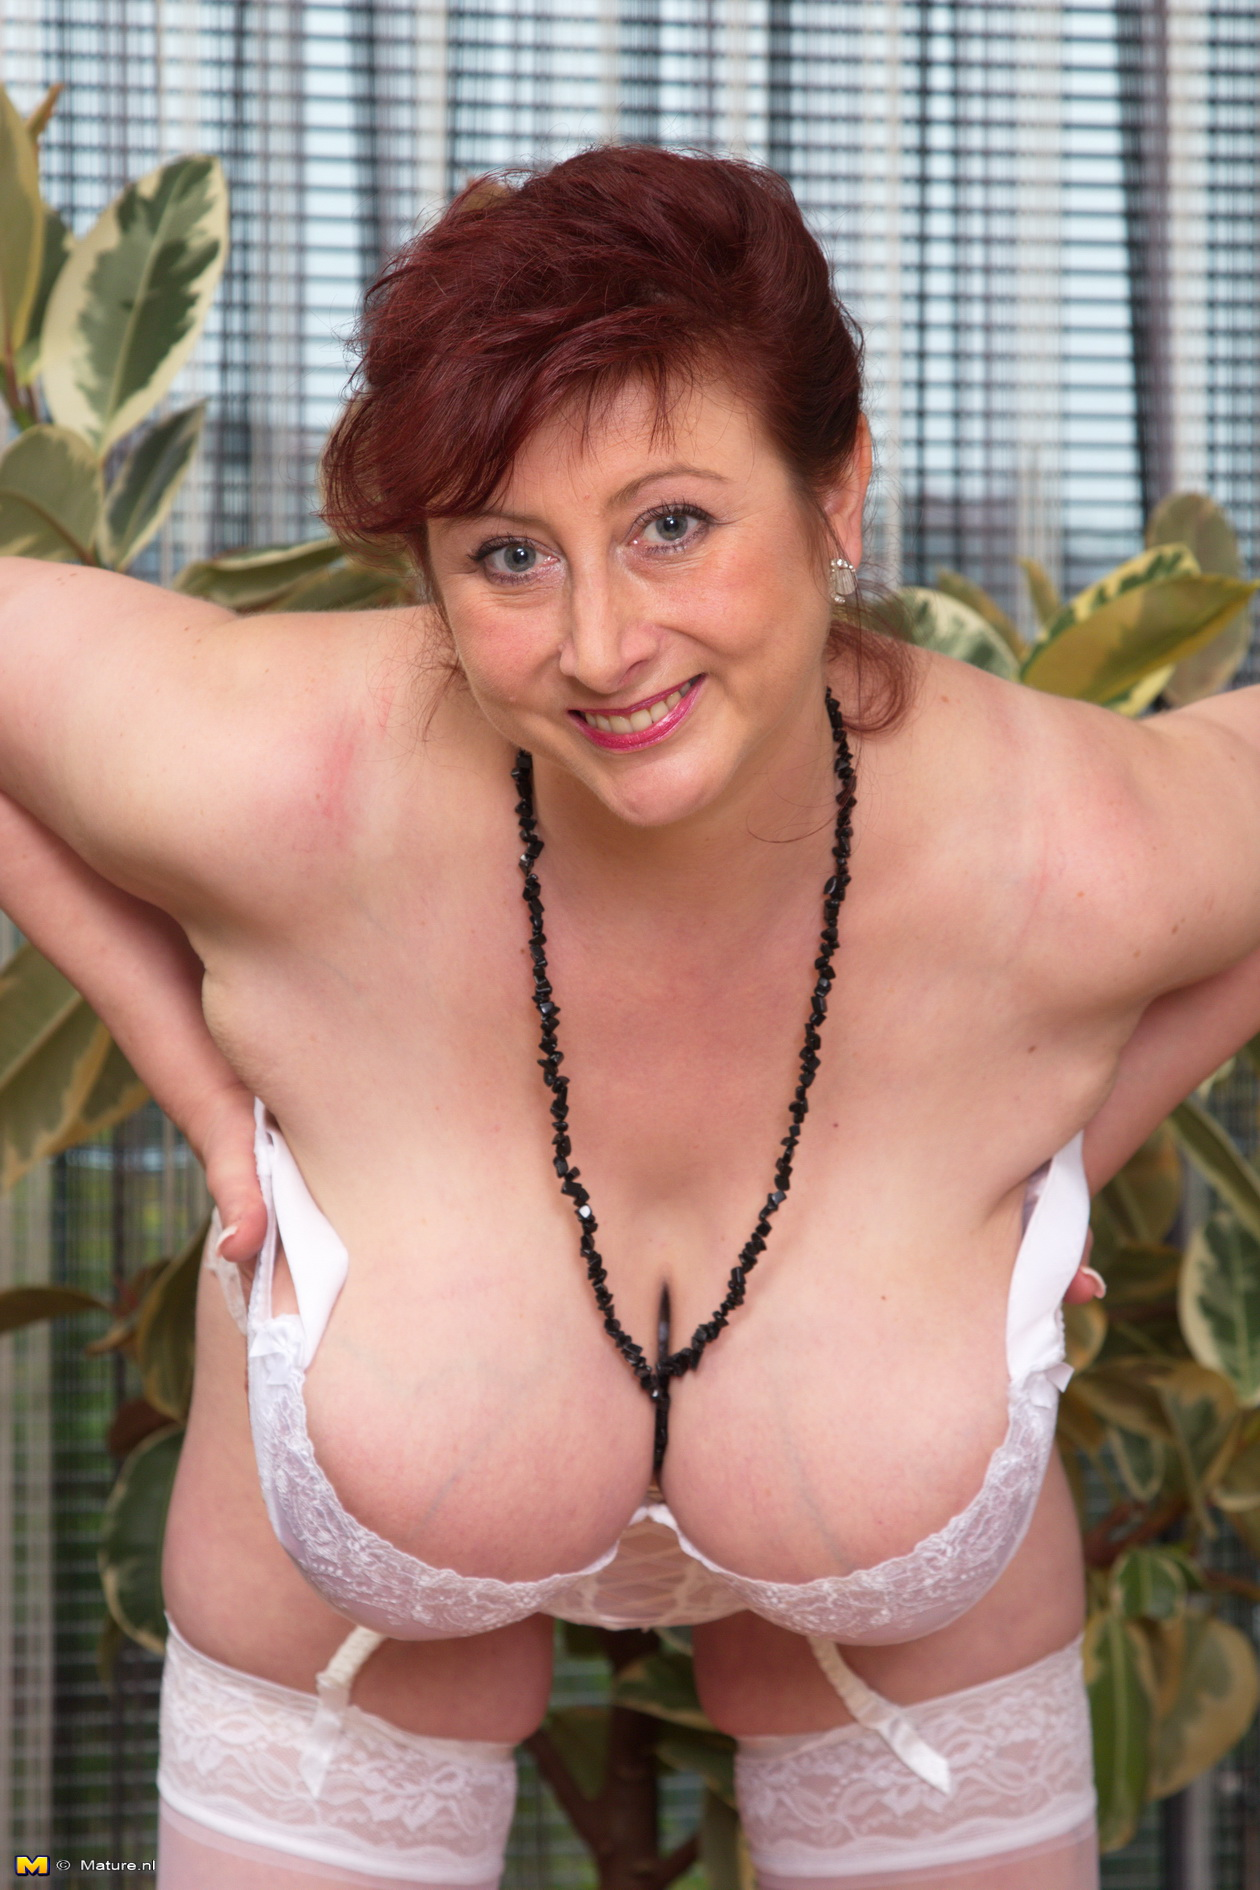 Mature rn big tits Mature Women With Huge Tits Sex Full Hd Photos Free Site Comments 2